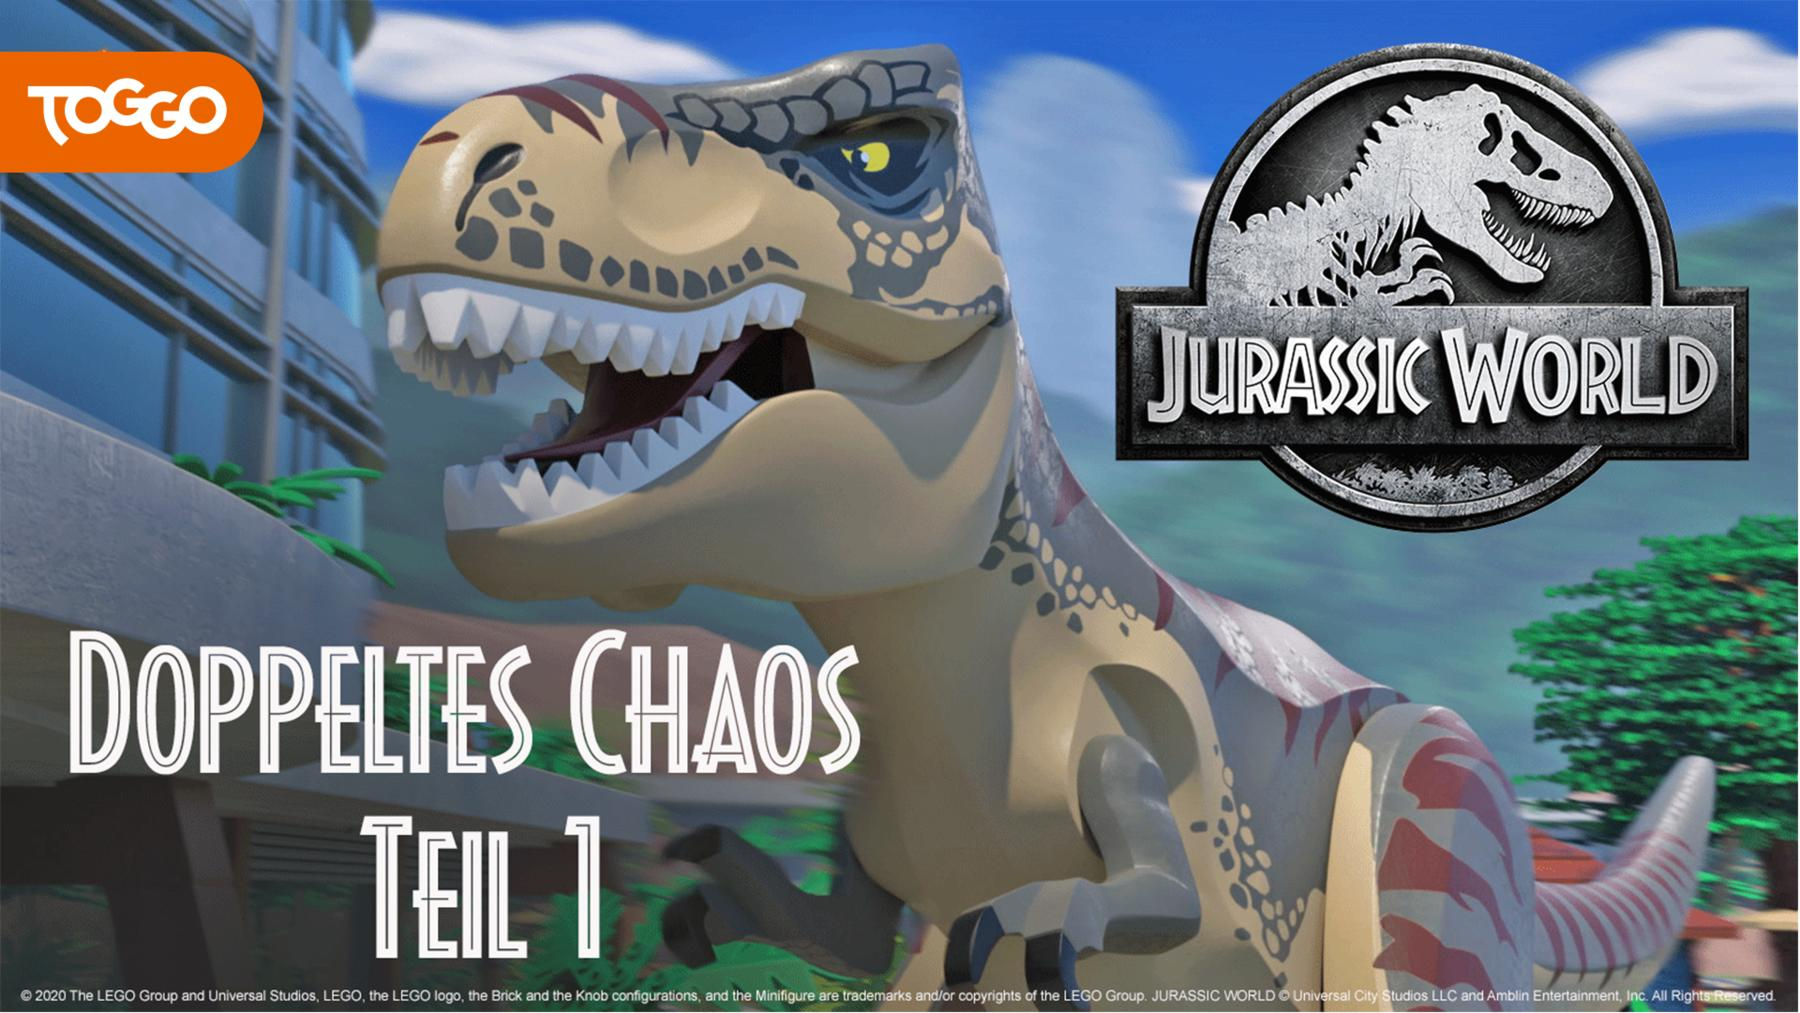 Jurassic World -  Doppeltes Chaos - Teil 1